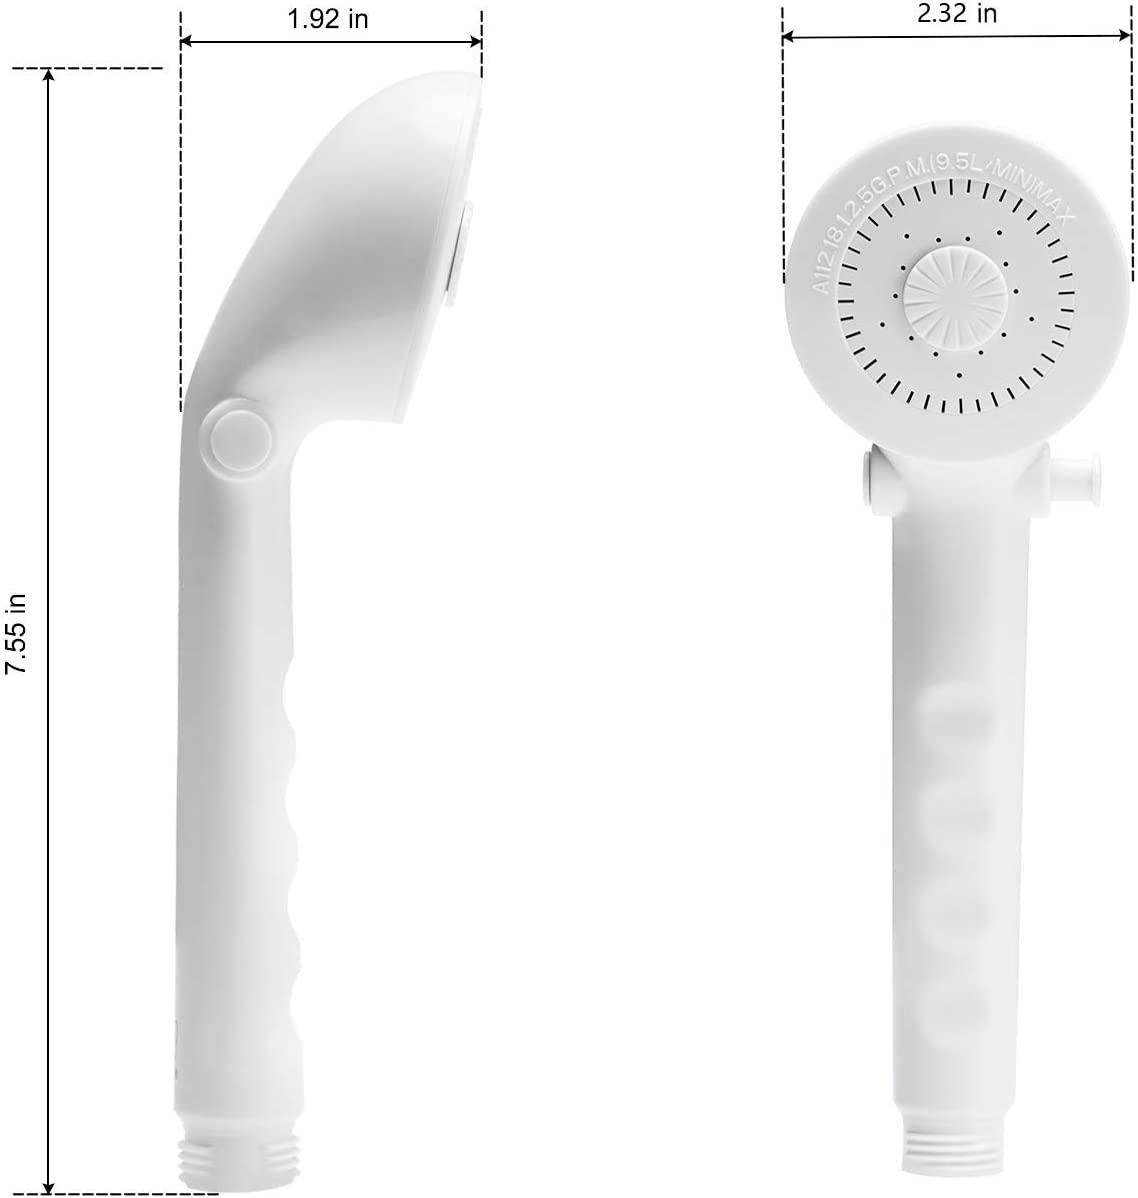 Motorhomes,Travel Trailers,Campers Fifth Wheels White OYMOV RV Showerhead with Hose Kit Outdoor Handheld On-Off Switch Shower Head Replacement Holder Bath Parts for RVs